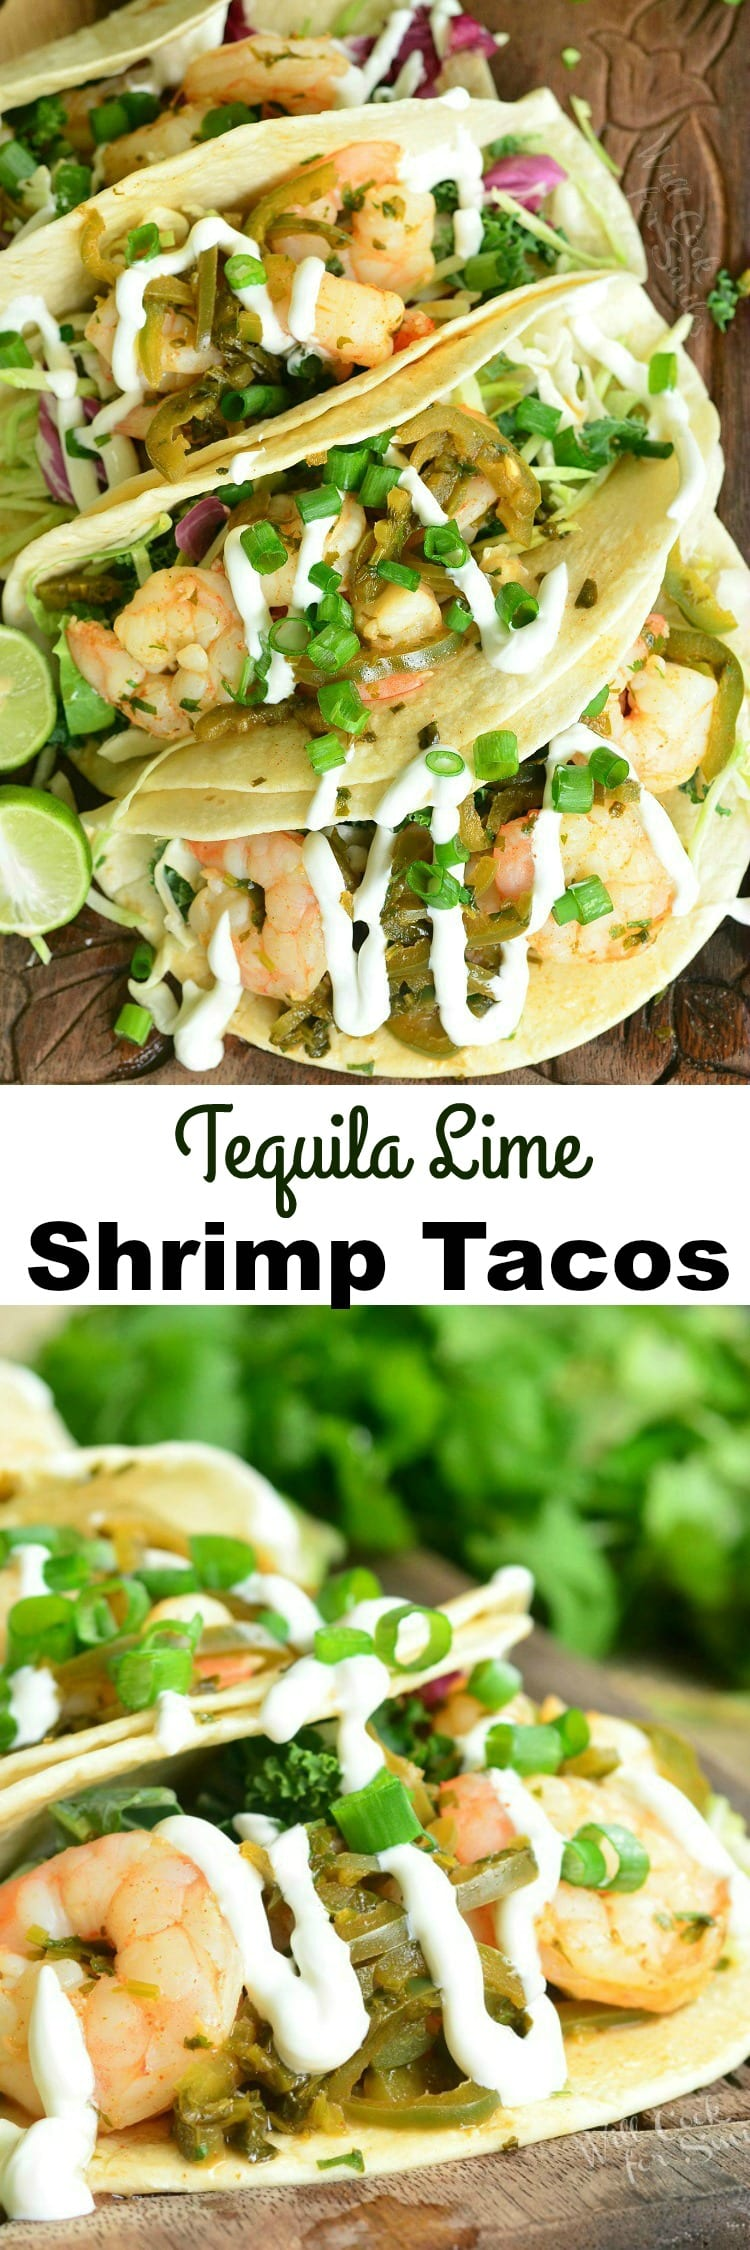 Top view of tequila Lime Shrimp Tacos with sour cream and green onions on top